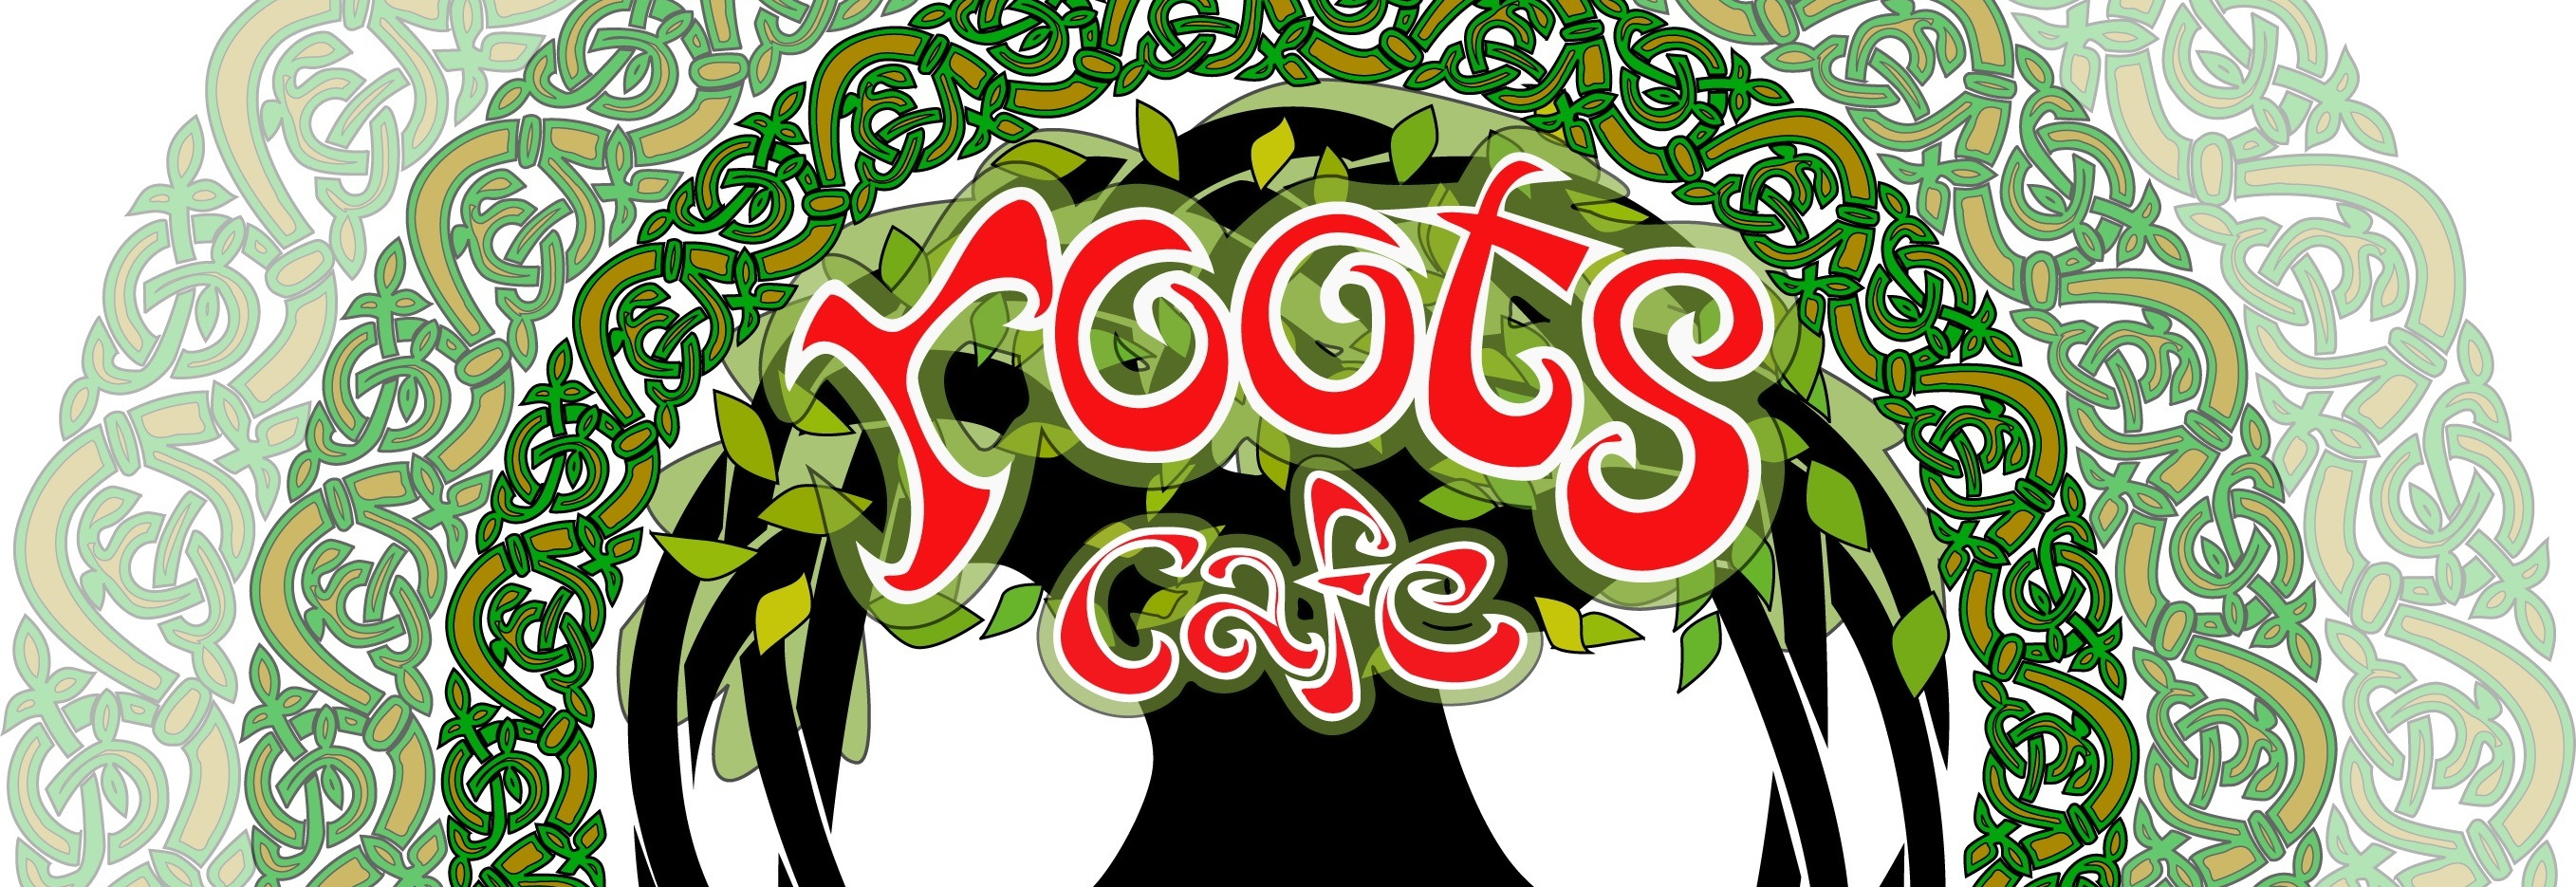 Roots Cafe Hakuba